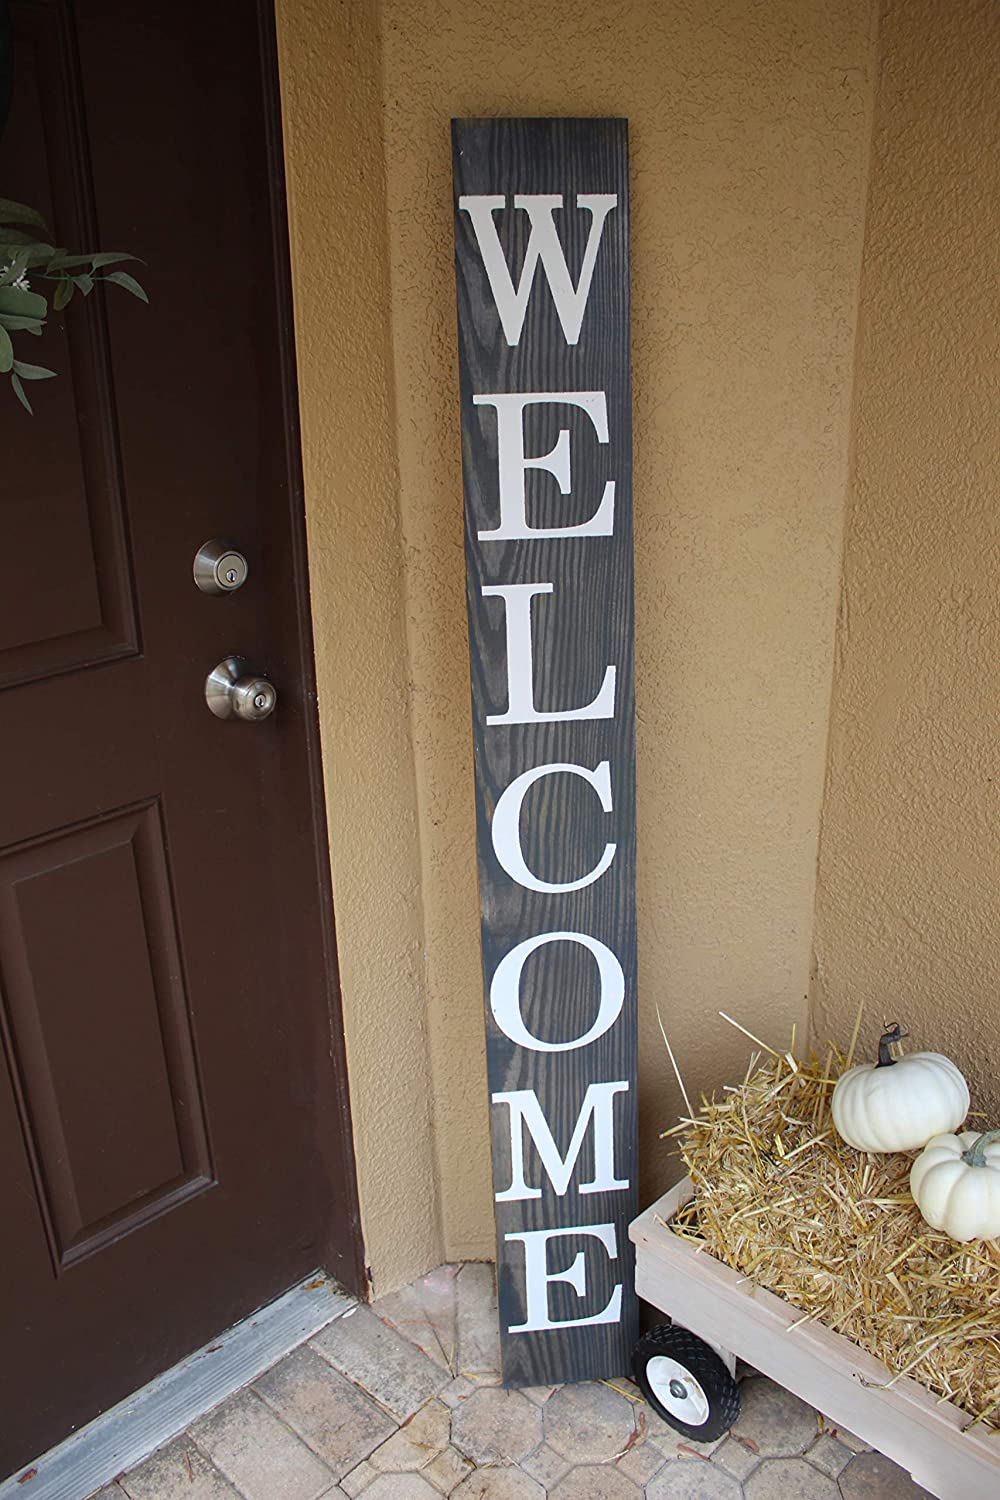 SmithFarmCo Wooden Welcome sign//signs for Front Porch//Front Door//Home Decor Made with Real Wood 5 feet Tall Large Rustic Fixer Upper Farmhouse Style Modern Grey